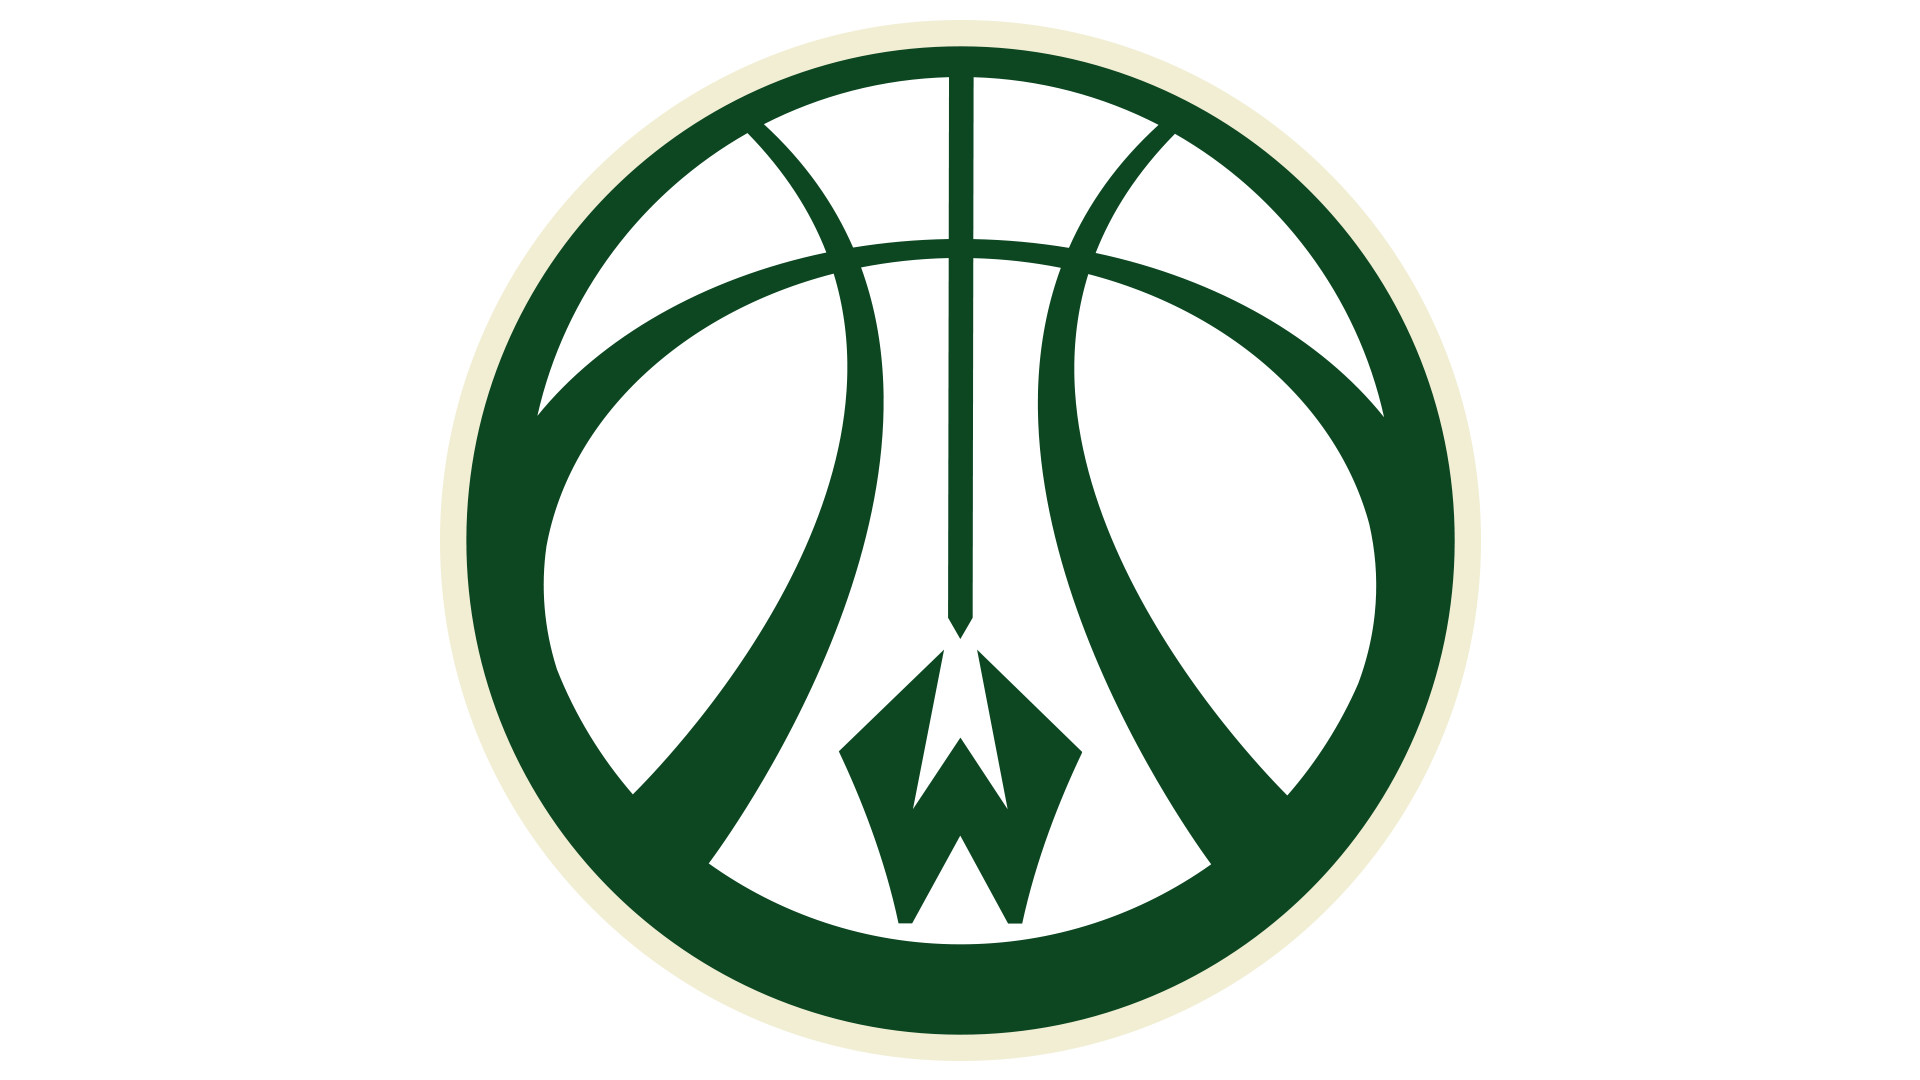 1920x1080 The secondary logo, much like the Bucks secondary mark, utilizes a stylized  basketball that is derived from the shape of the antlers found in the  primary ...